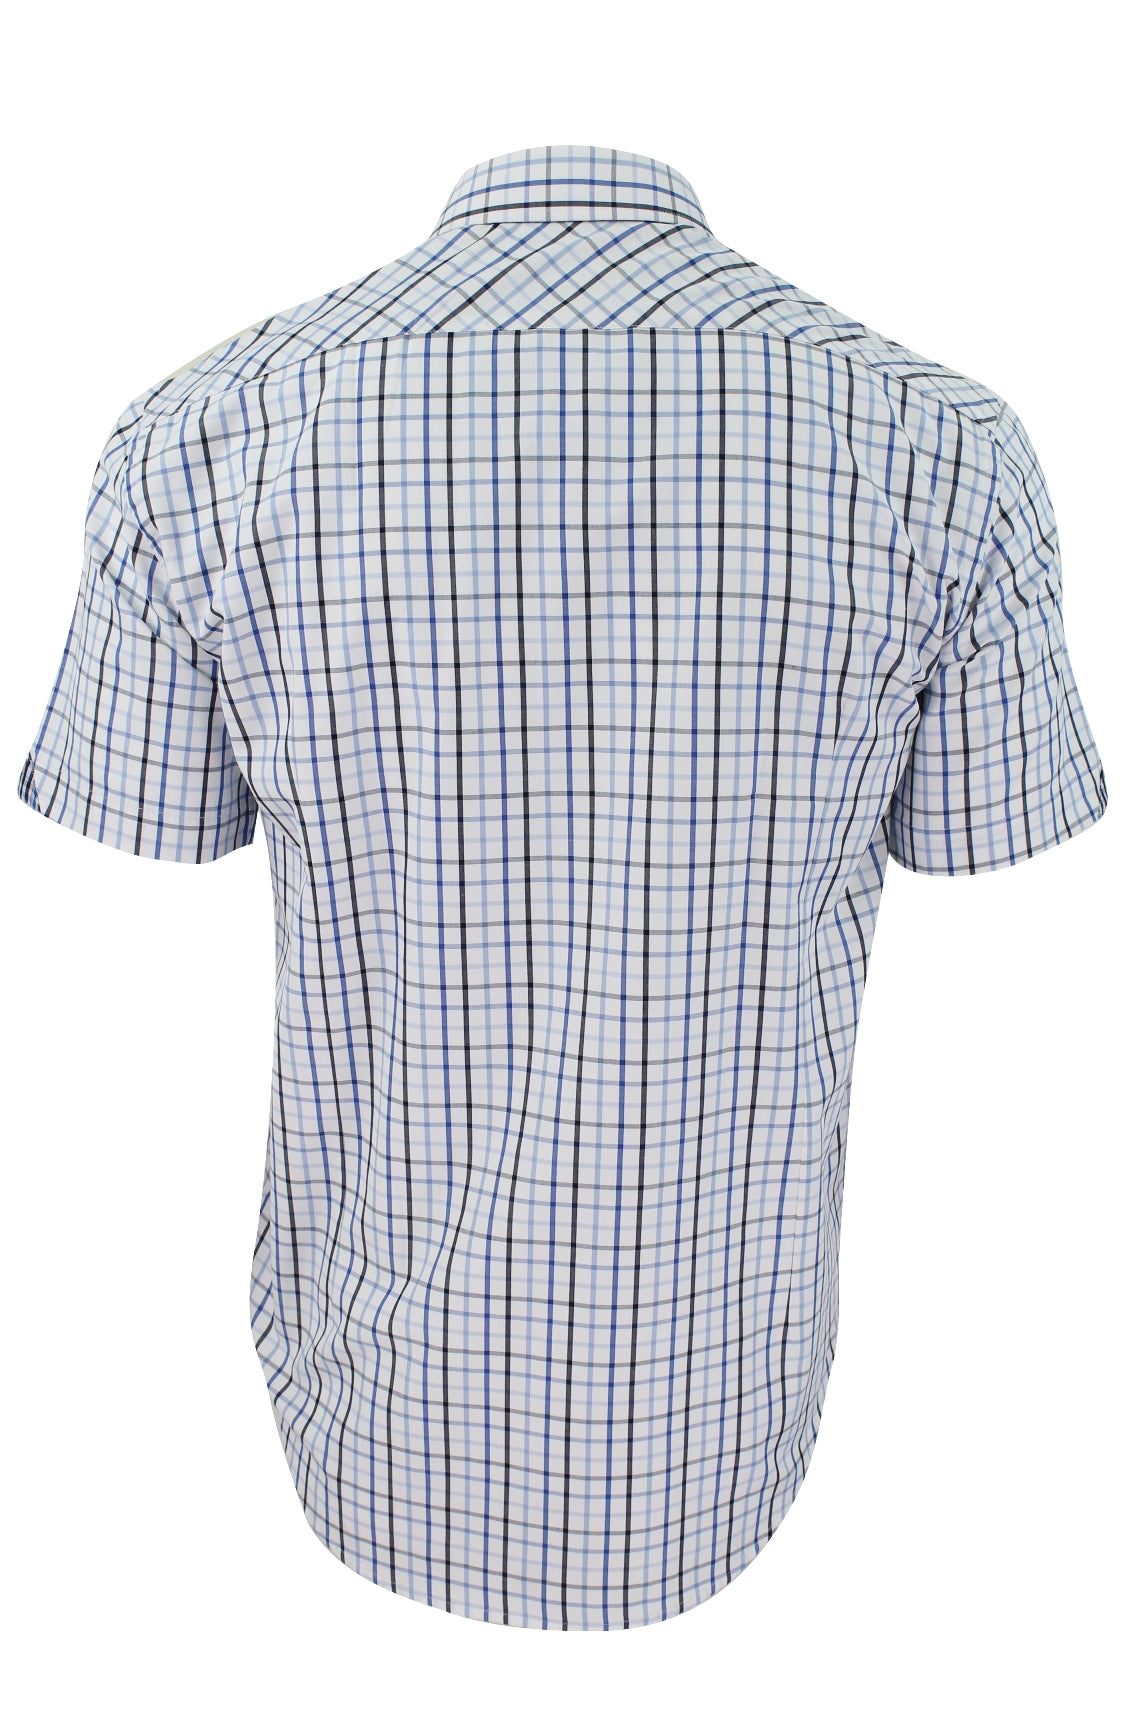 Xact Mens Check Shirt Short Sleeves-3